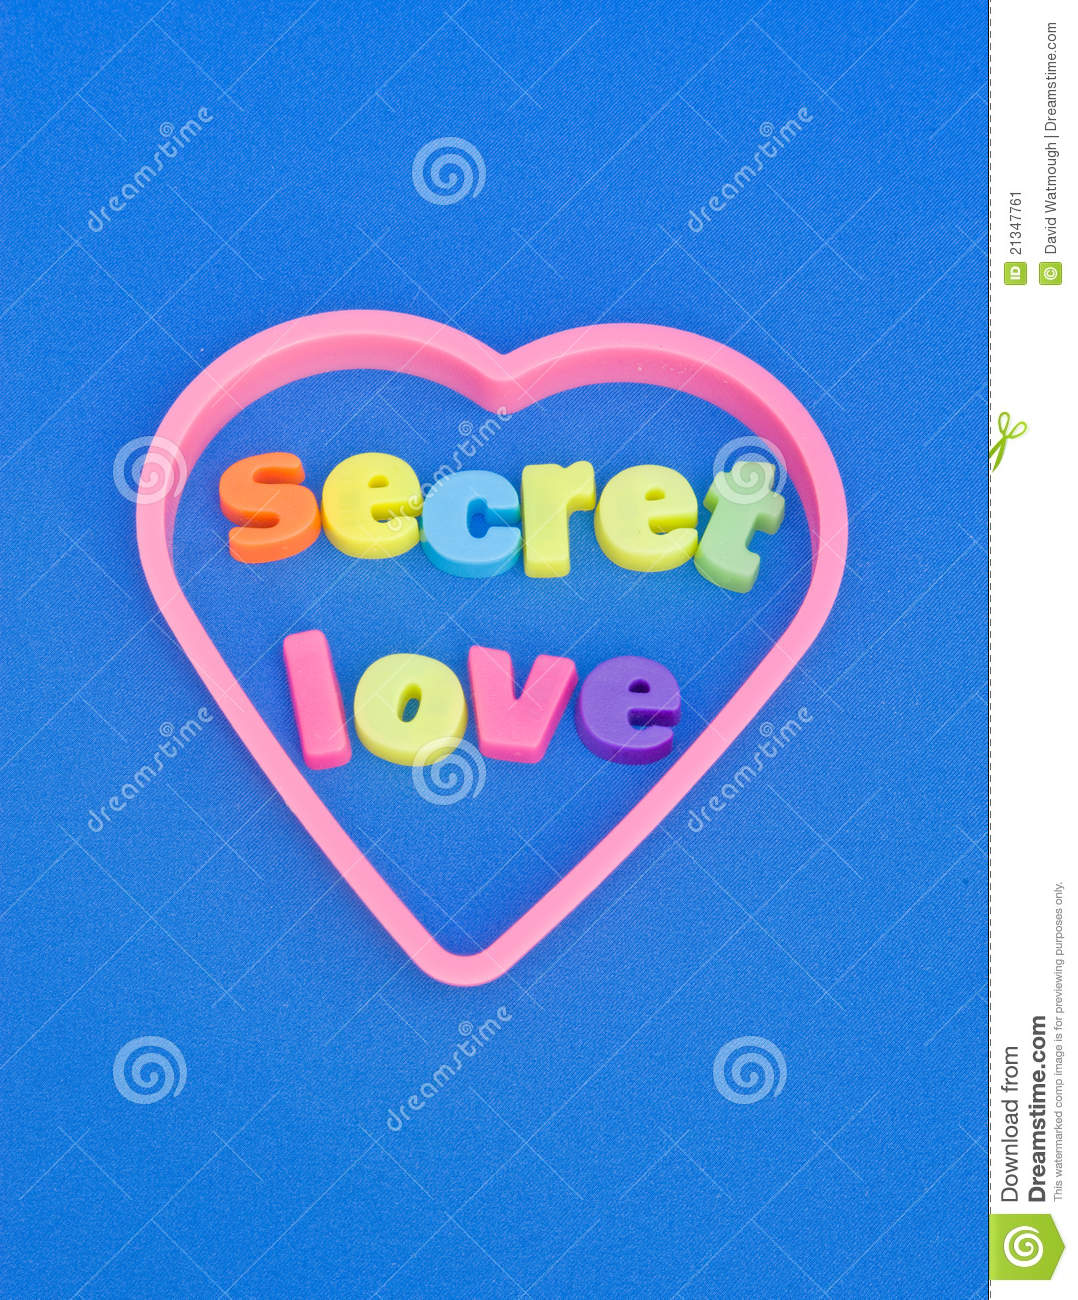 Secret Love St Valentine S Day Message Stock Image